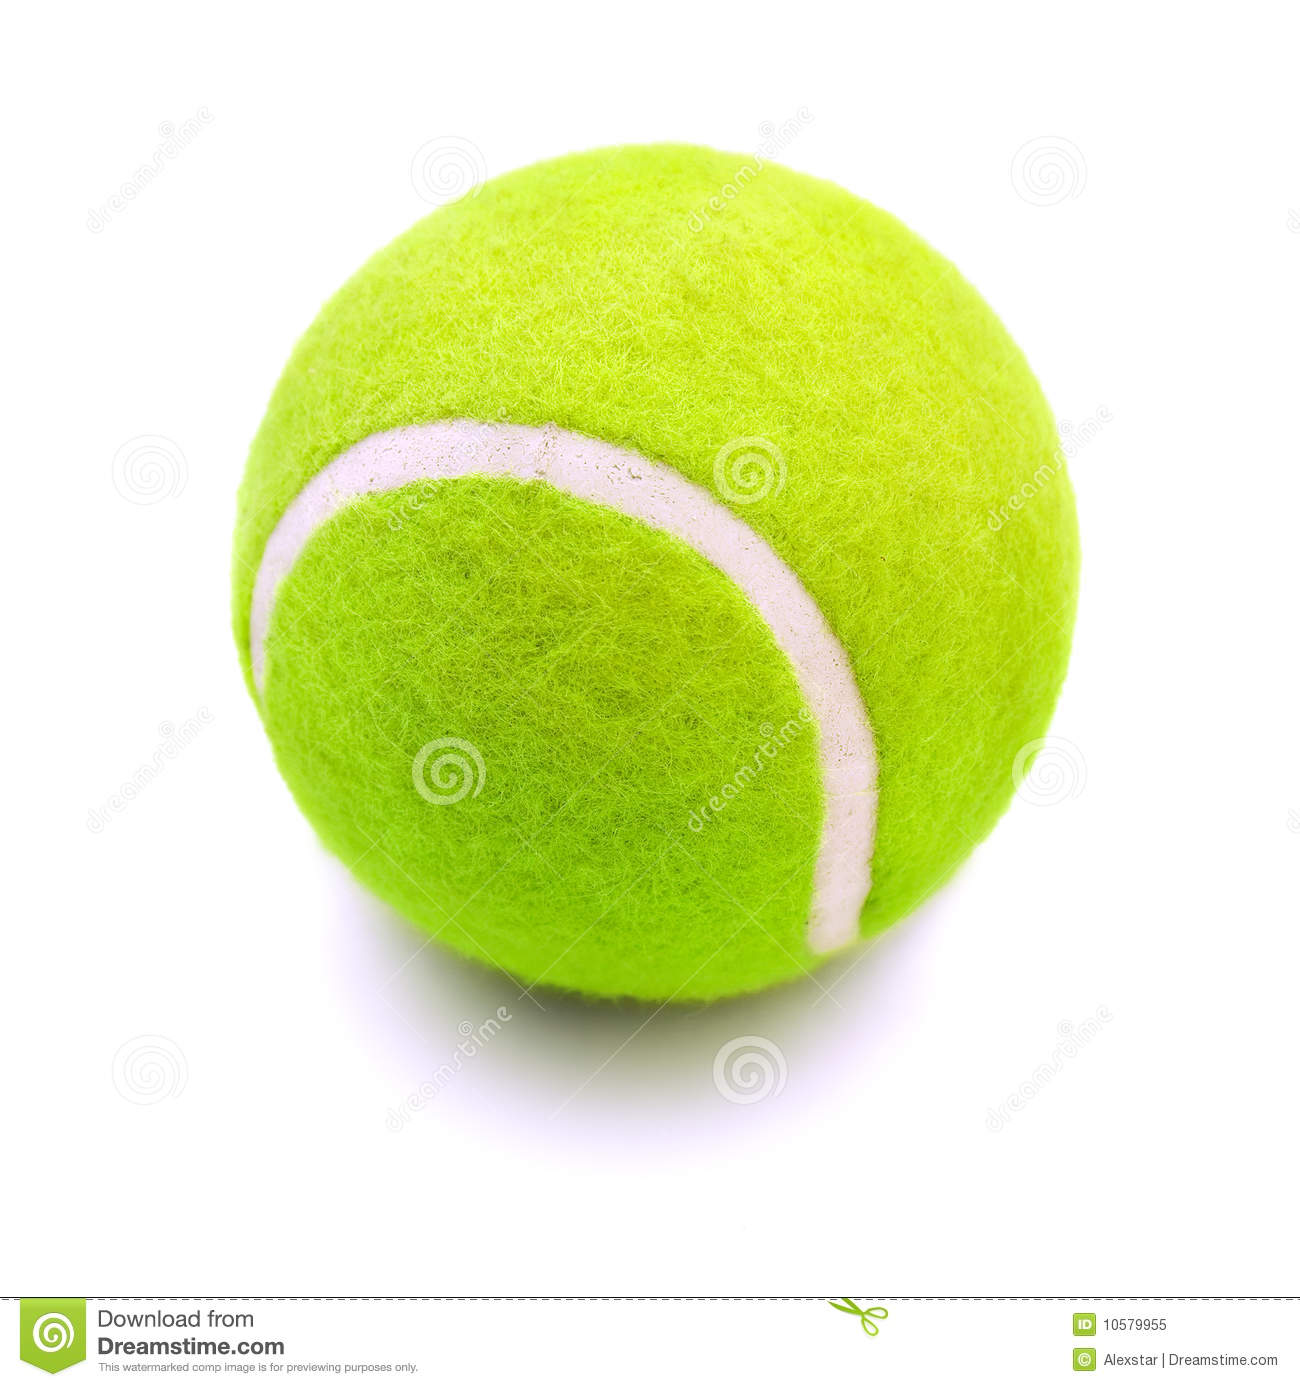 time taken for a tennis ball There are certain time limits for how long you can take on a serve, taking a break between sets, etc, in professional tennis.